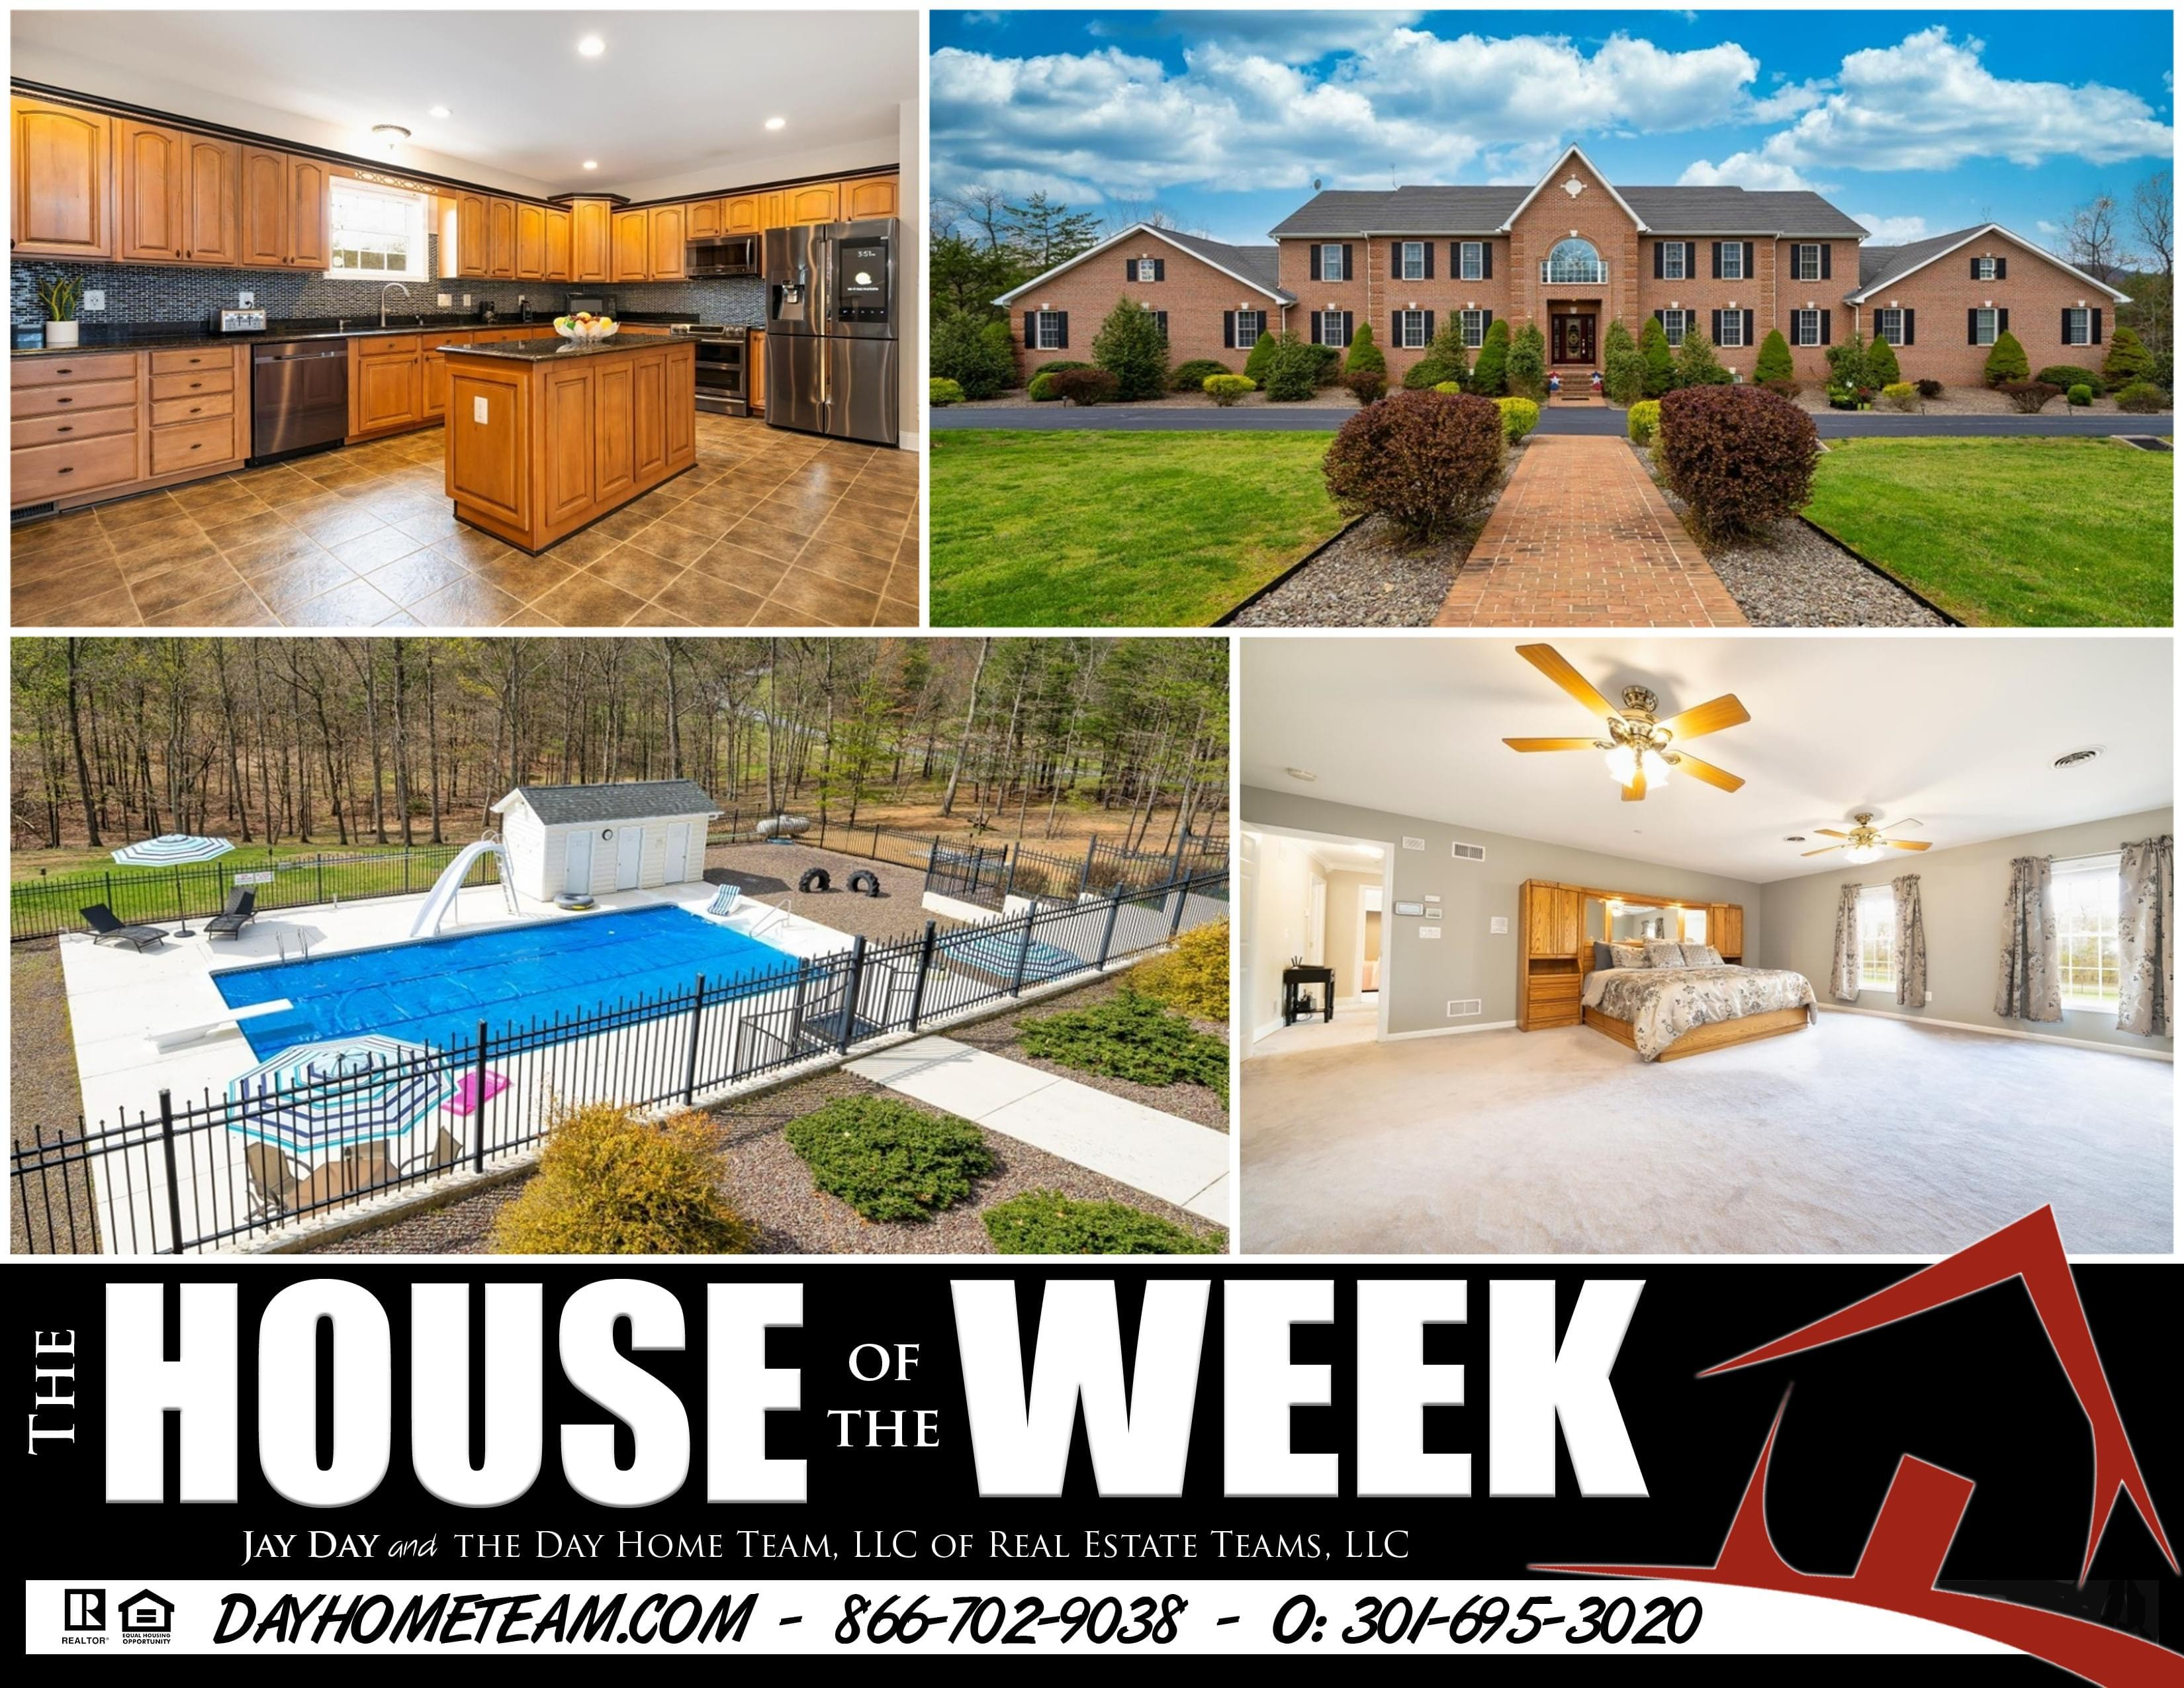 House of the Week